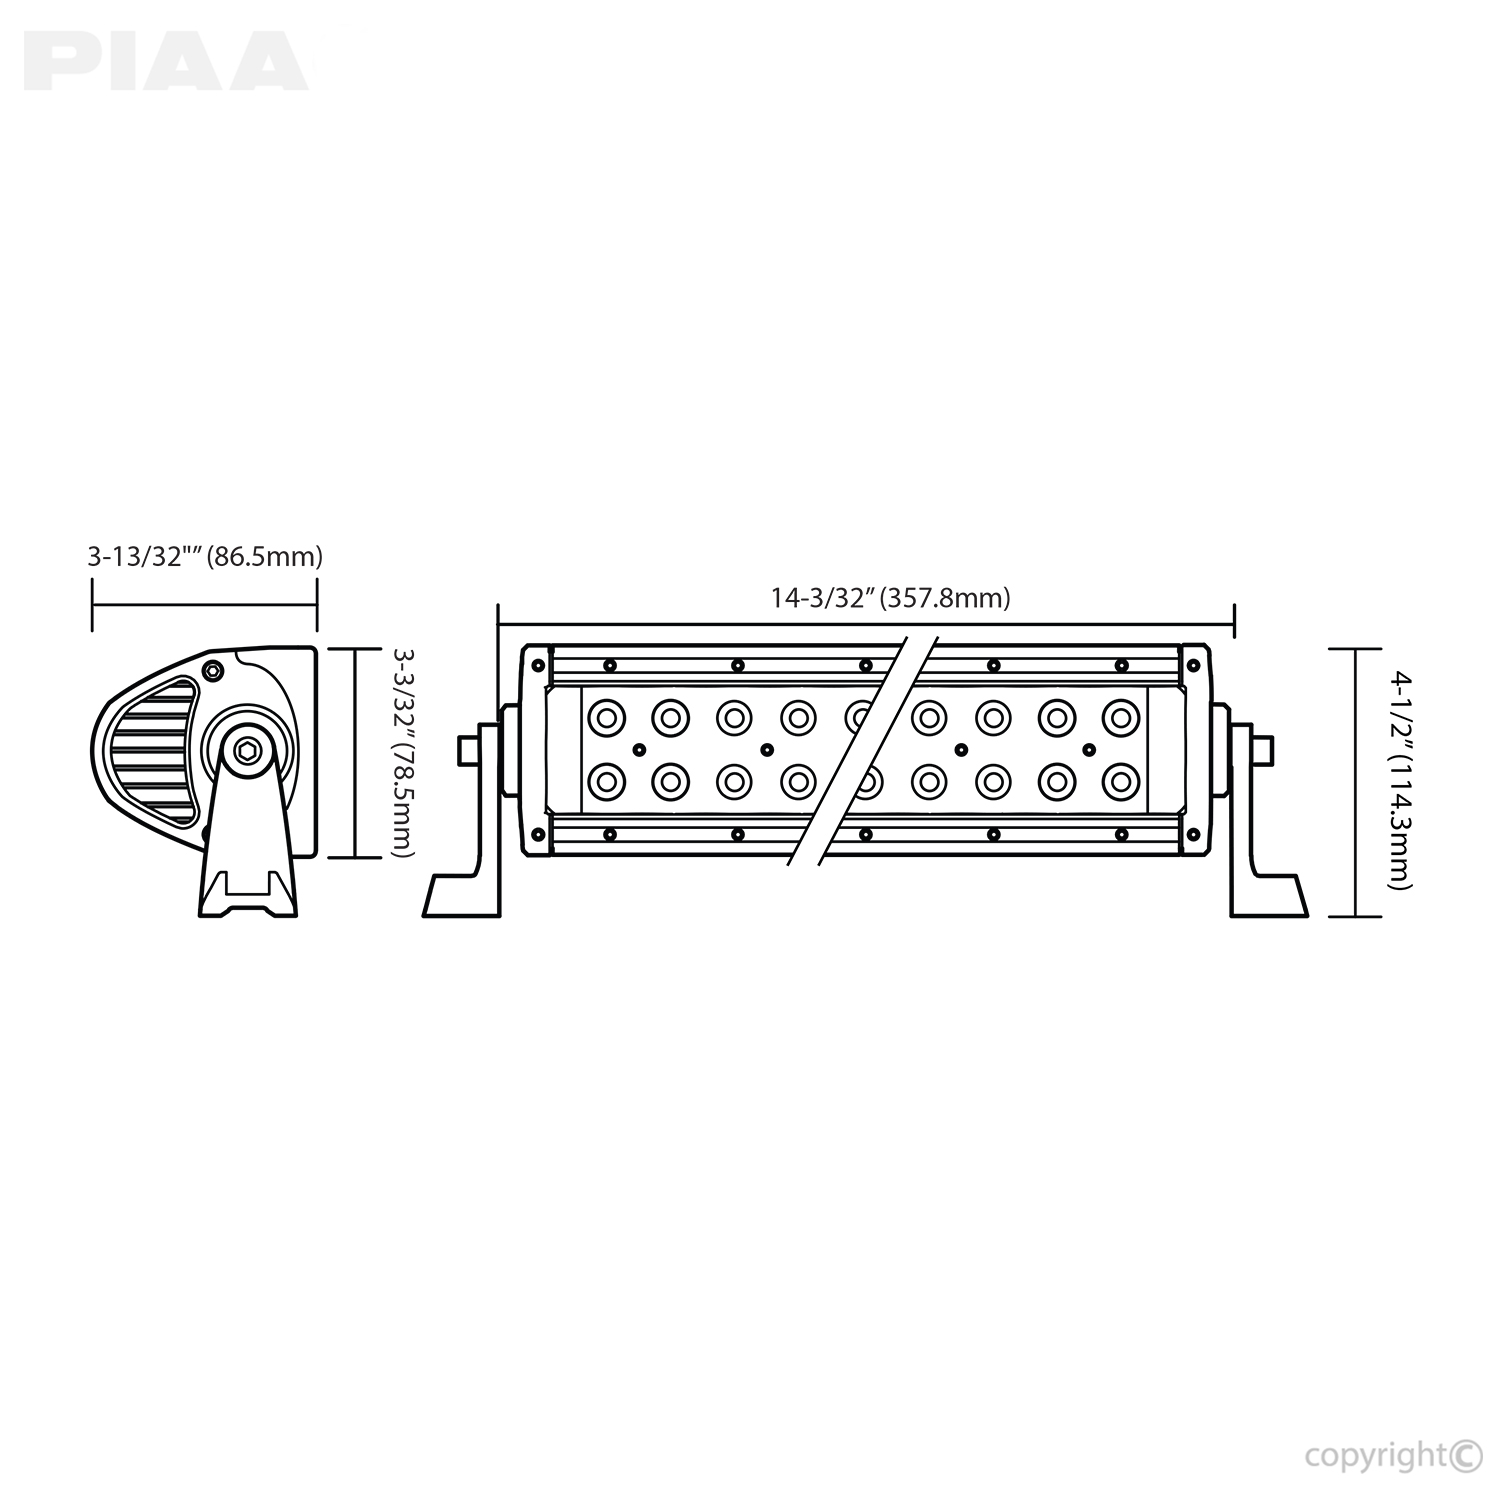 Piaa 1100x wiring diagram auto electrical wiring diagram piaa 1100x wiring diagram wire center u2022 rh caribcar co 1000 driving lights piaa 1000 driving lights piaa cheapraybanclubmaster